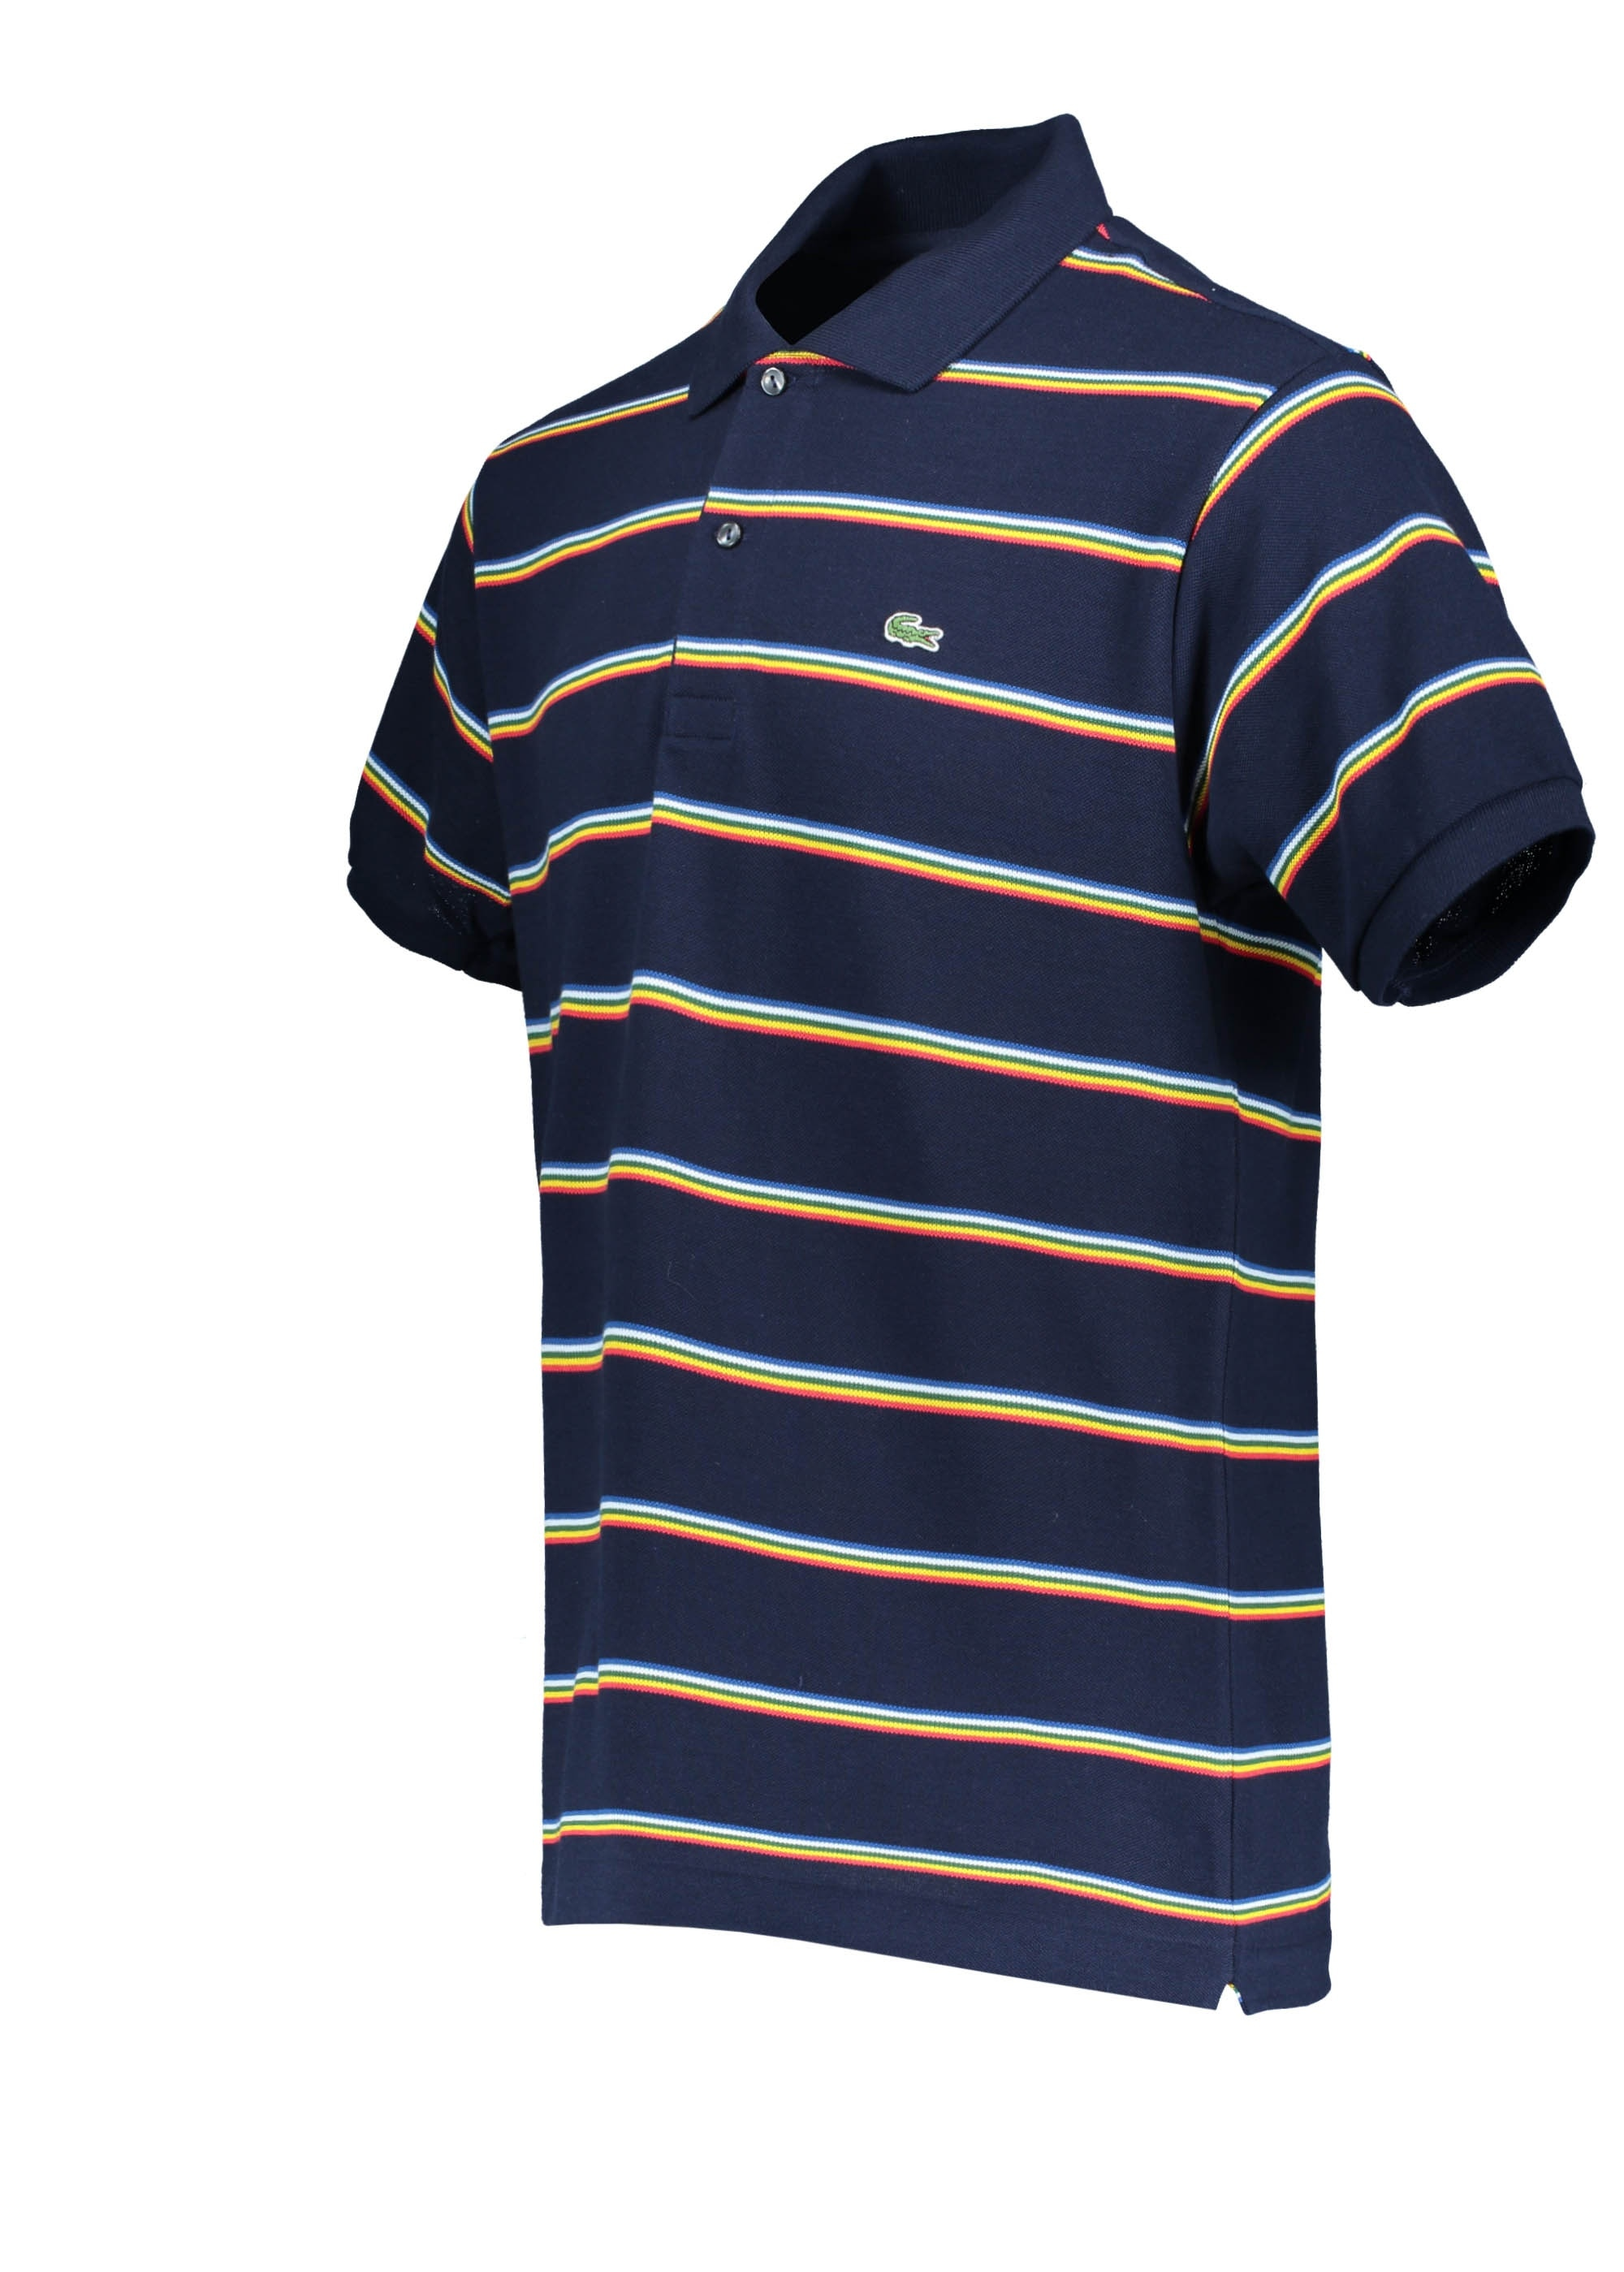 bdc179914 Lacoste Stripe Polo - Navy Blue - Polo Shirts from Triads UK